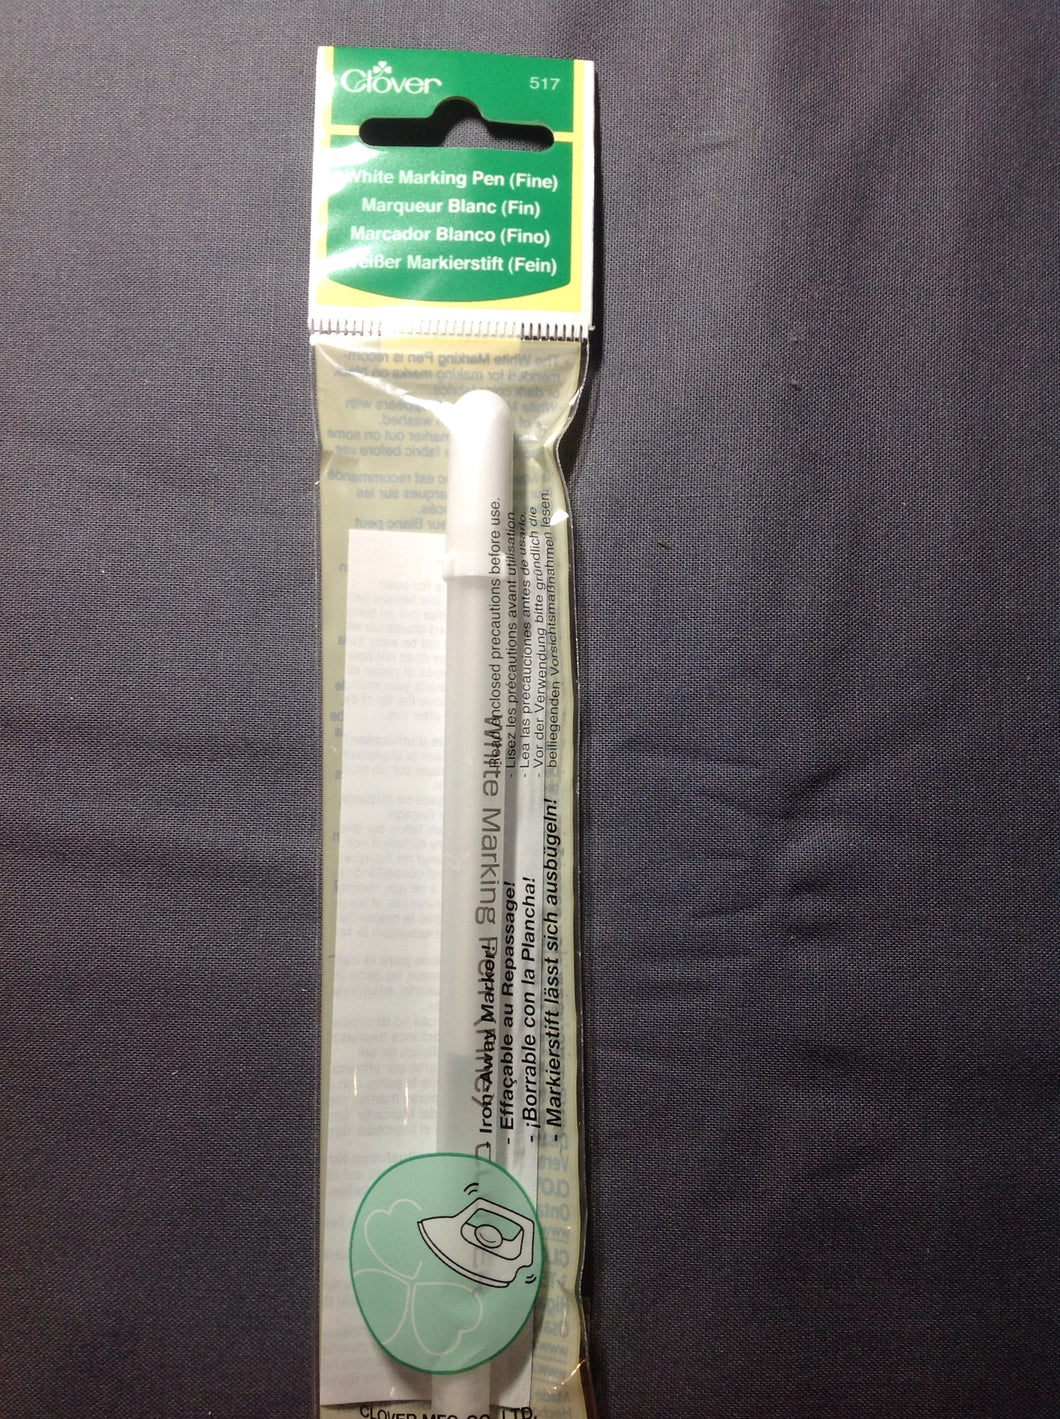 Clover White Marking Pen (fine) Iron Away Marks